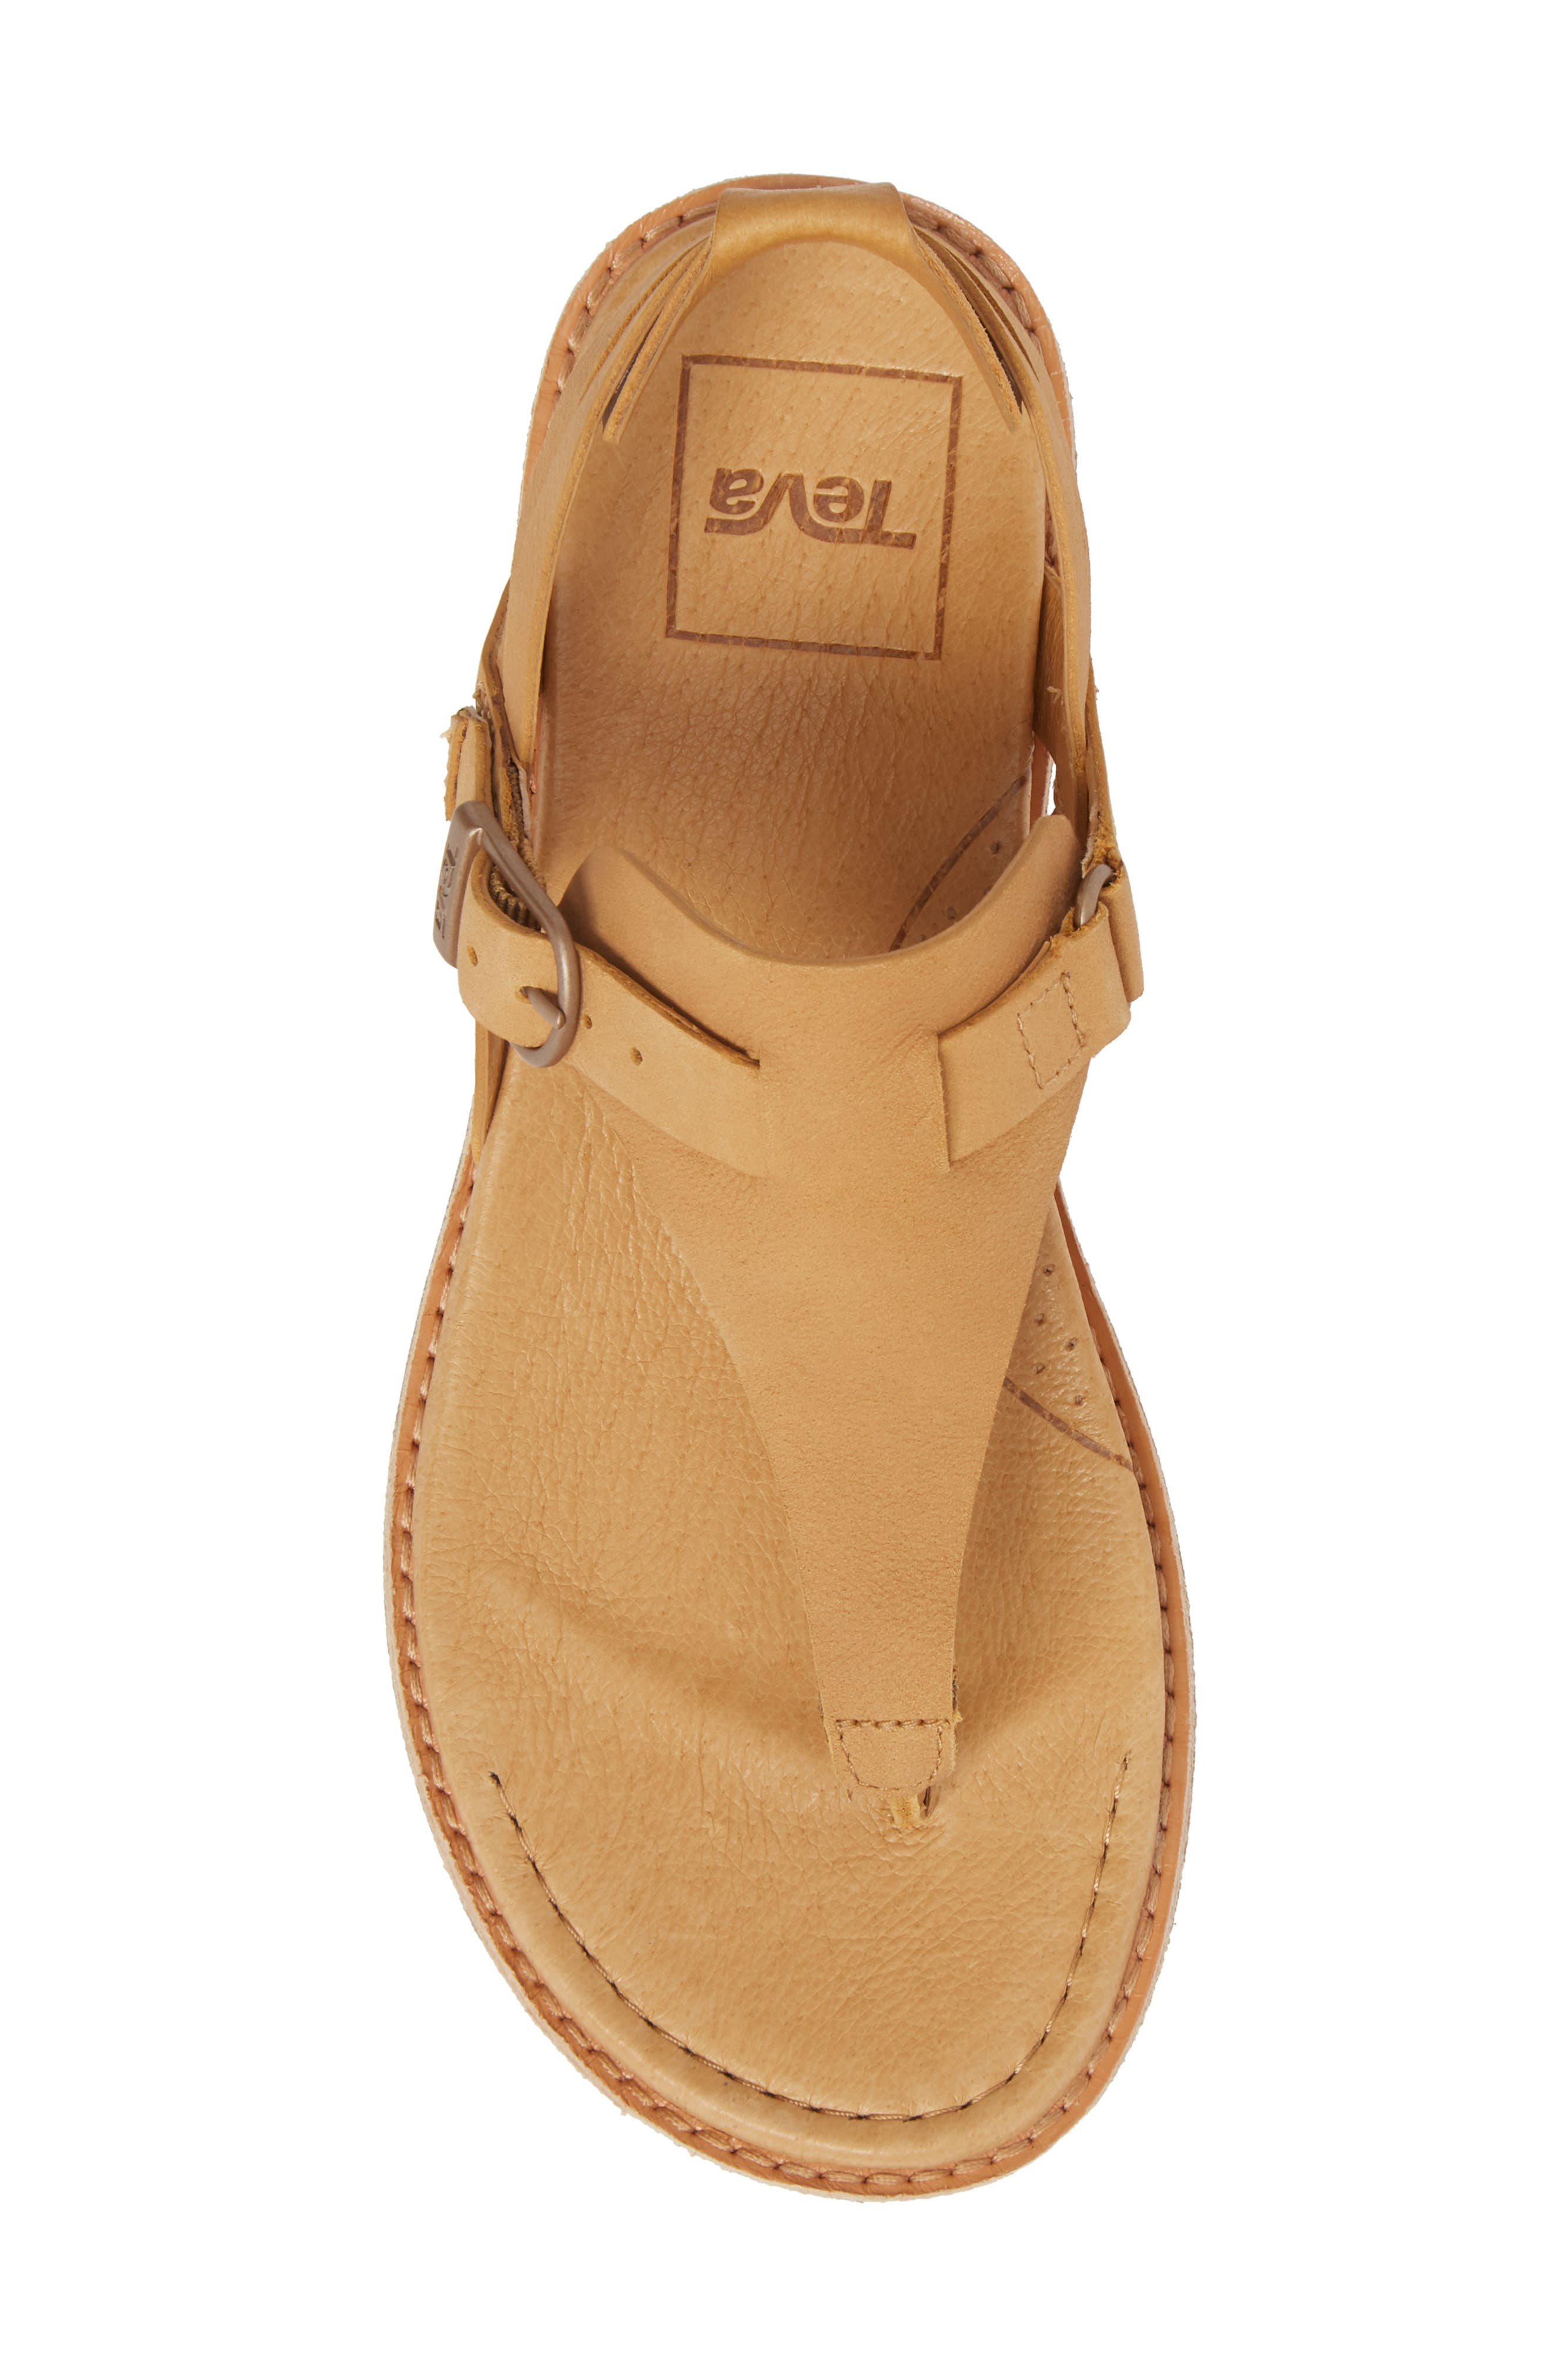 Encanta V-Strap Sandal,                             Alternate thumbnail 5, color,                             TAN